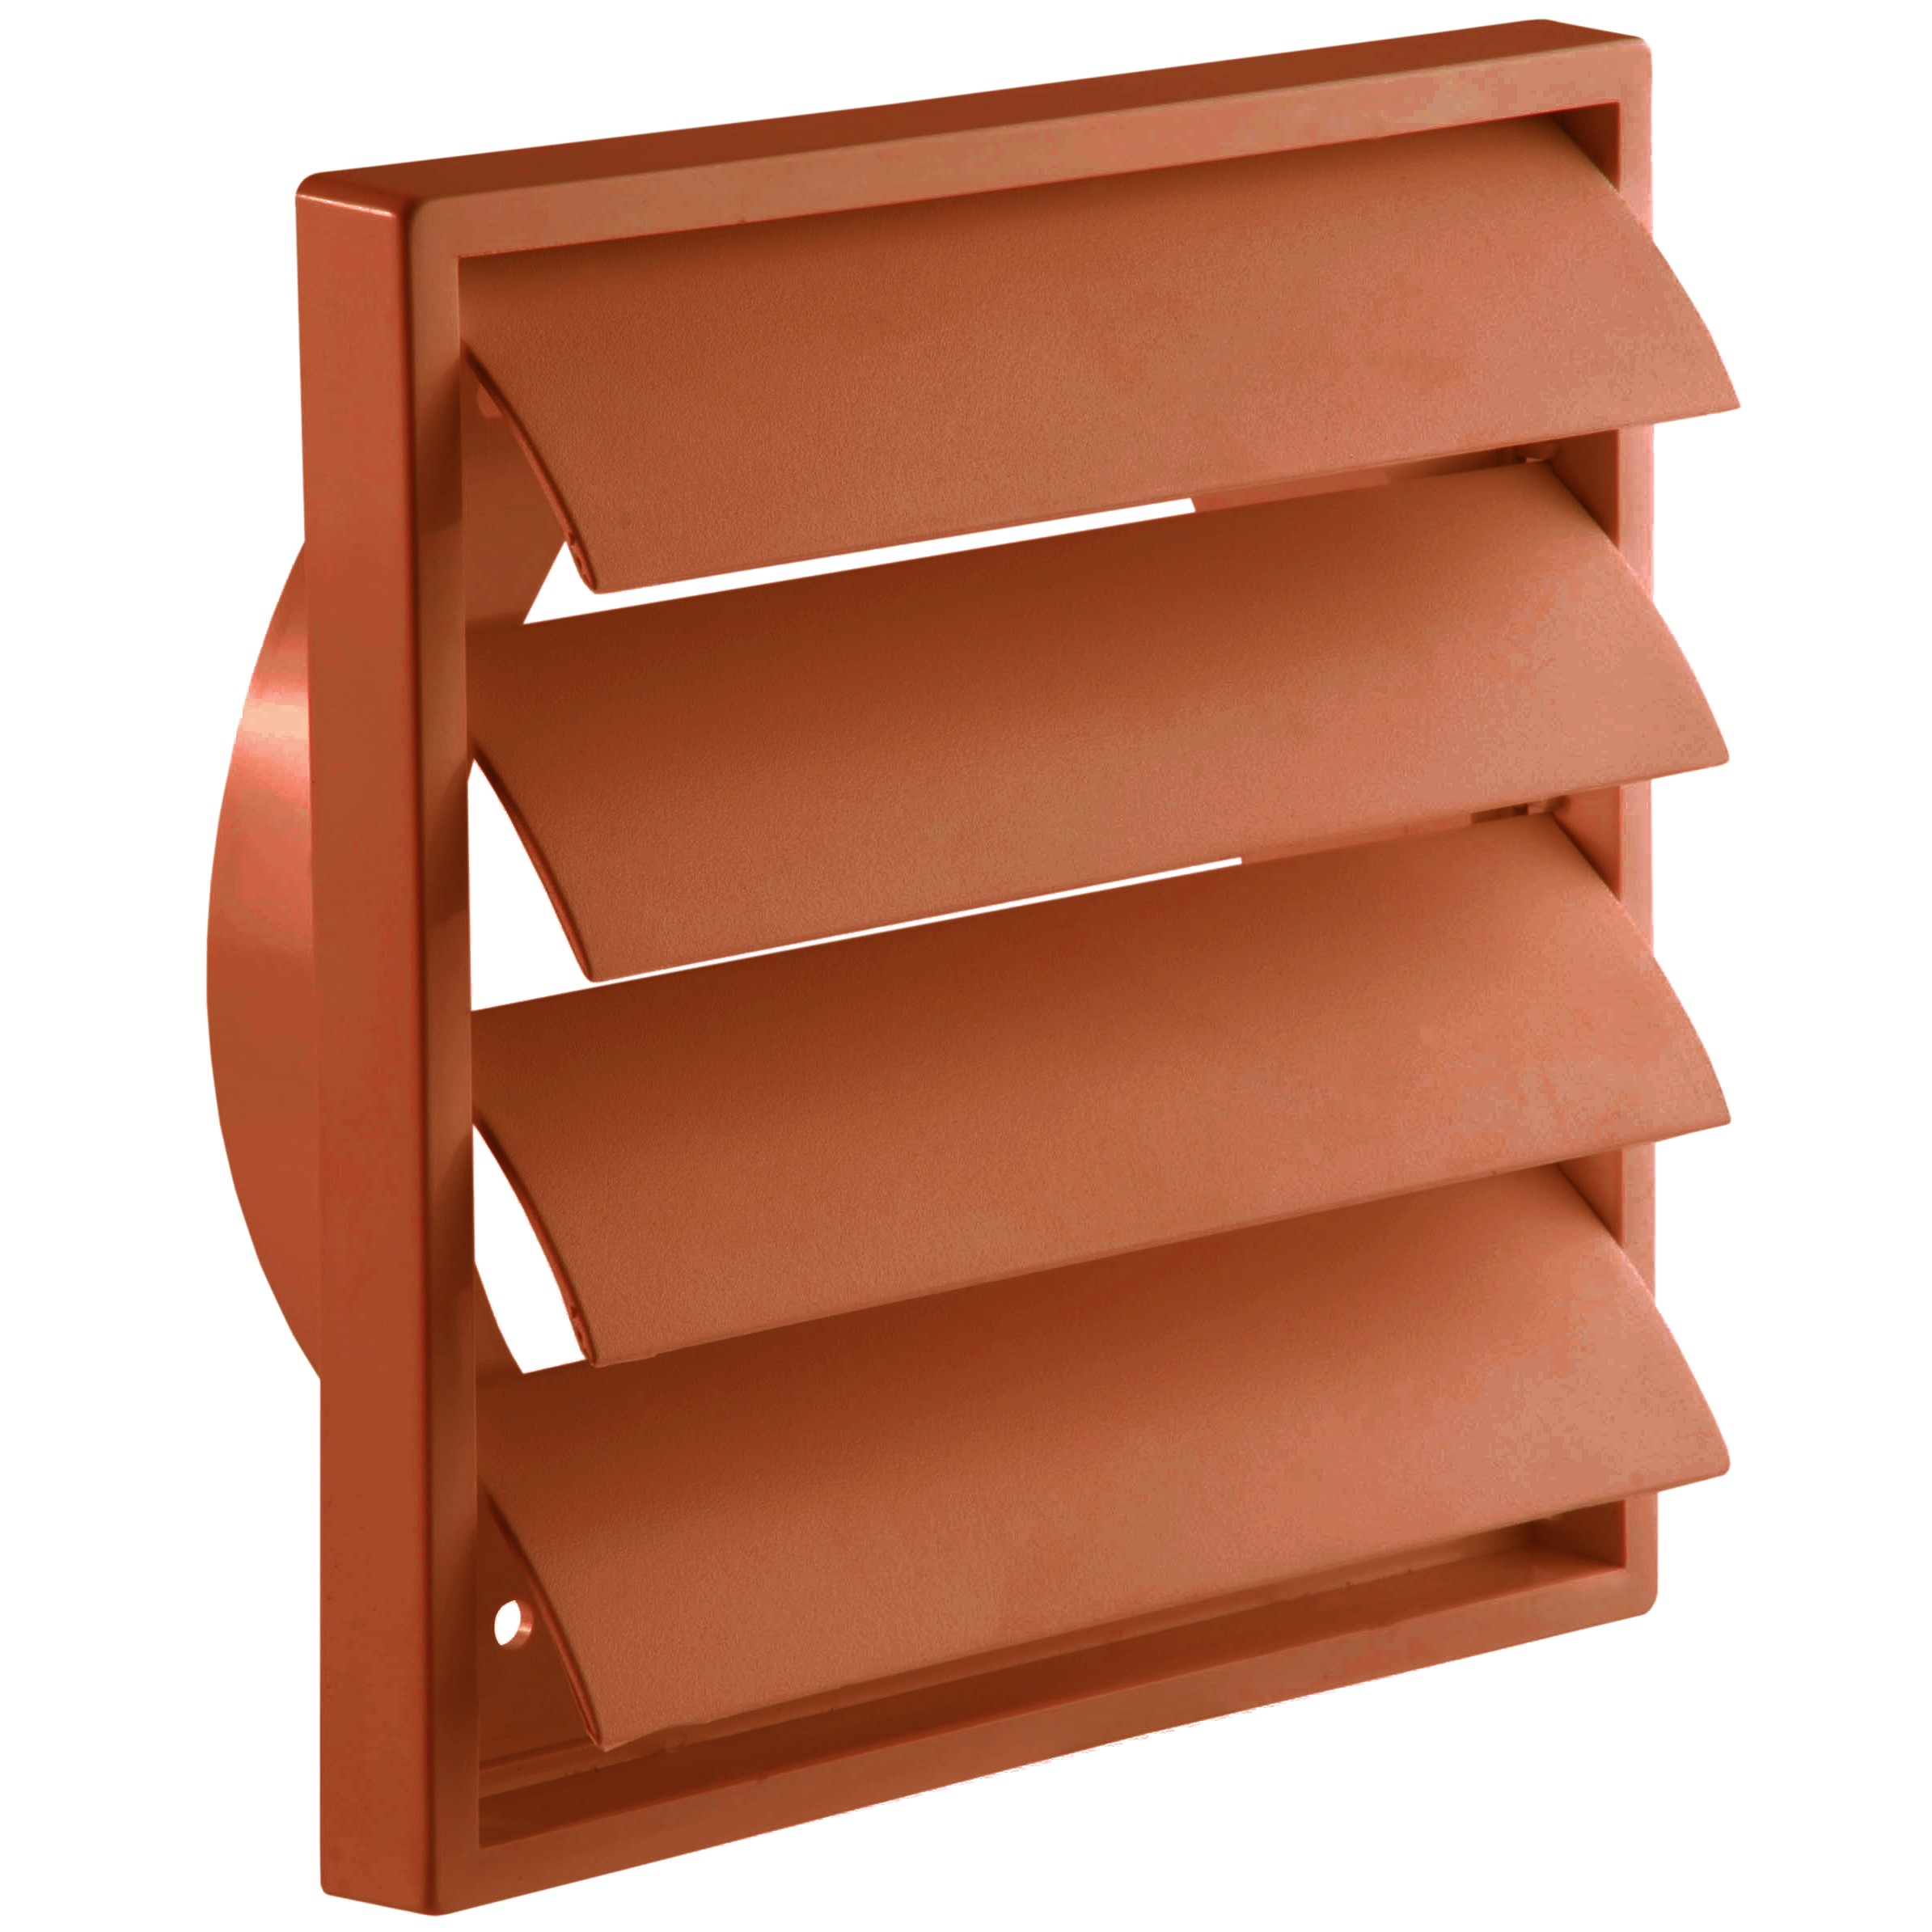 Manrose Round Ducting Pipe Gravity Shutter Vent Outlet - Terracotta, 125mm